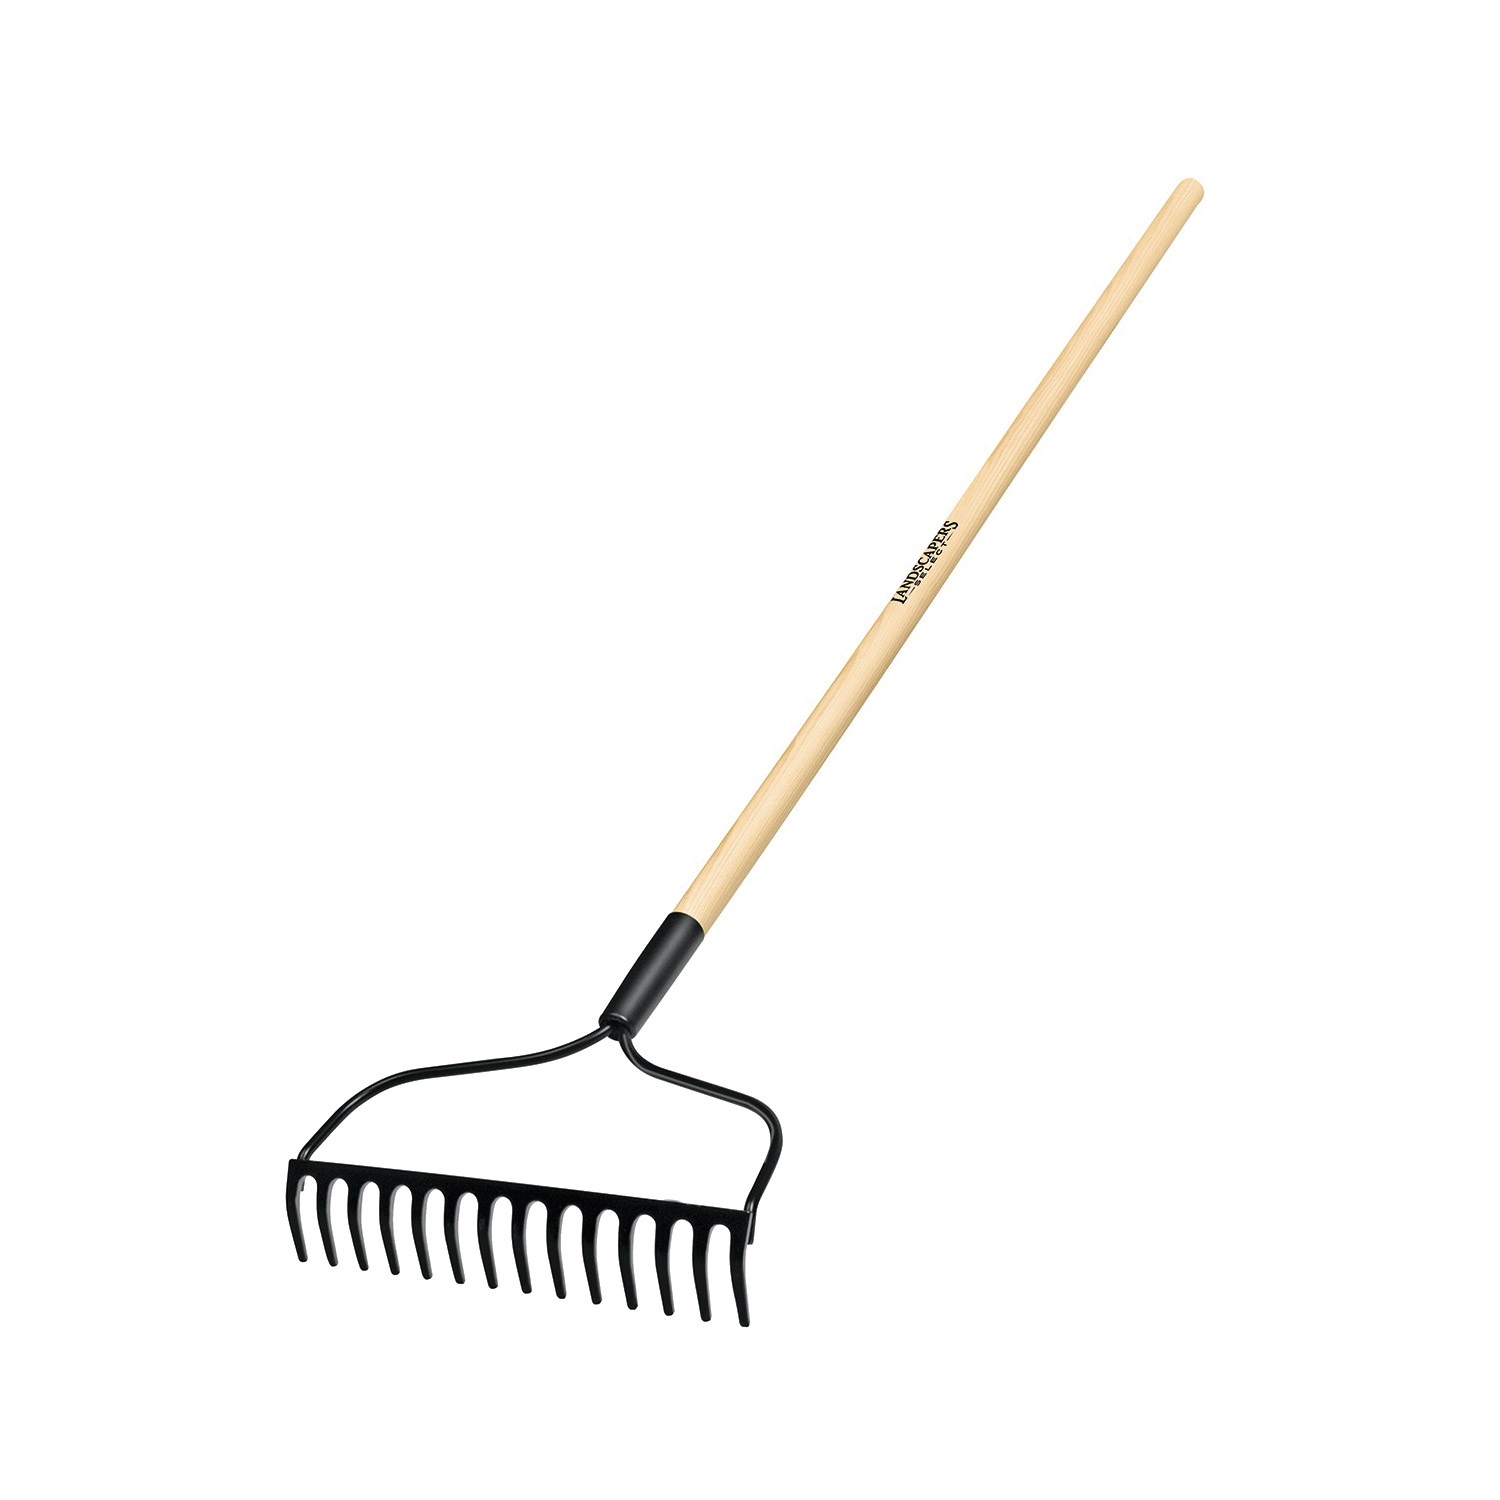 Picture of Landscapers Select 34584 R14AL Bow Rake, 13.5 in W Head, 14 -Tine, Steel Tine, 48 in L Handle